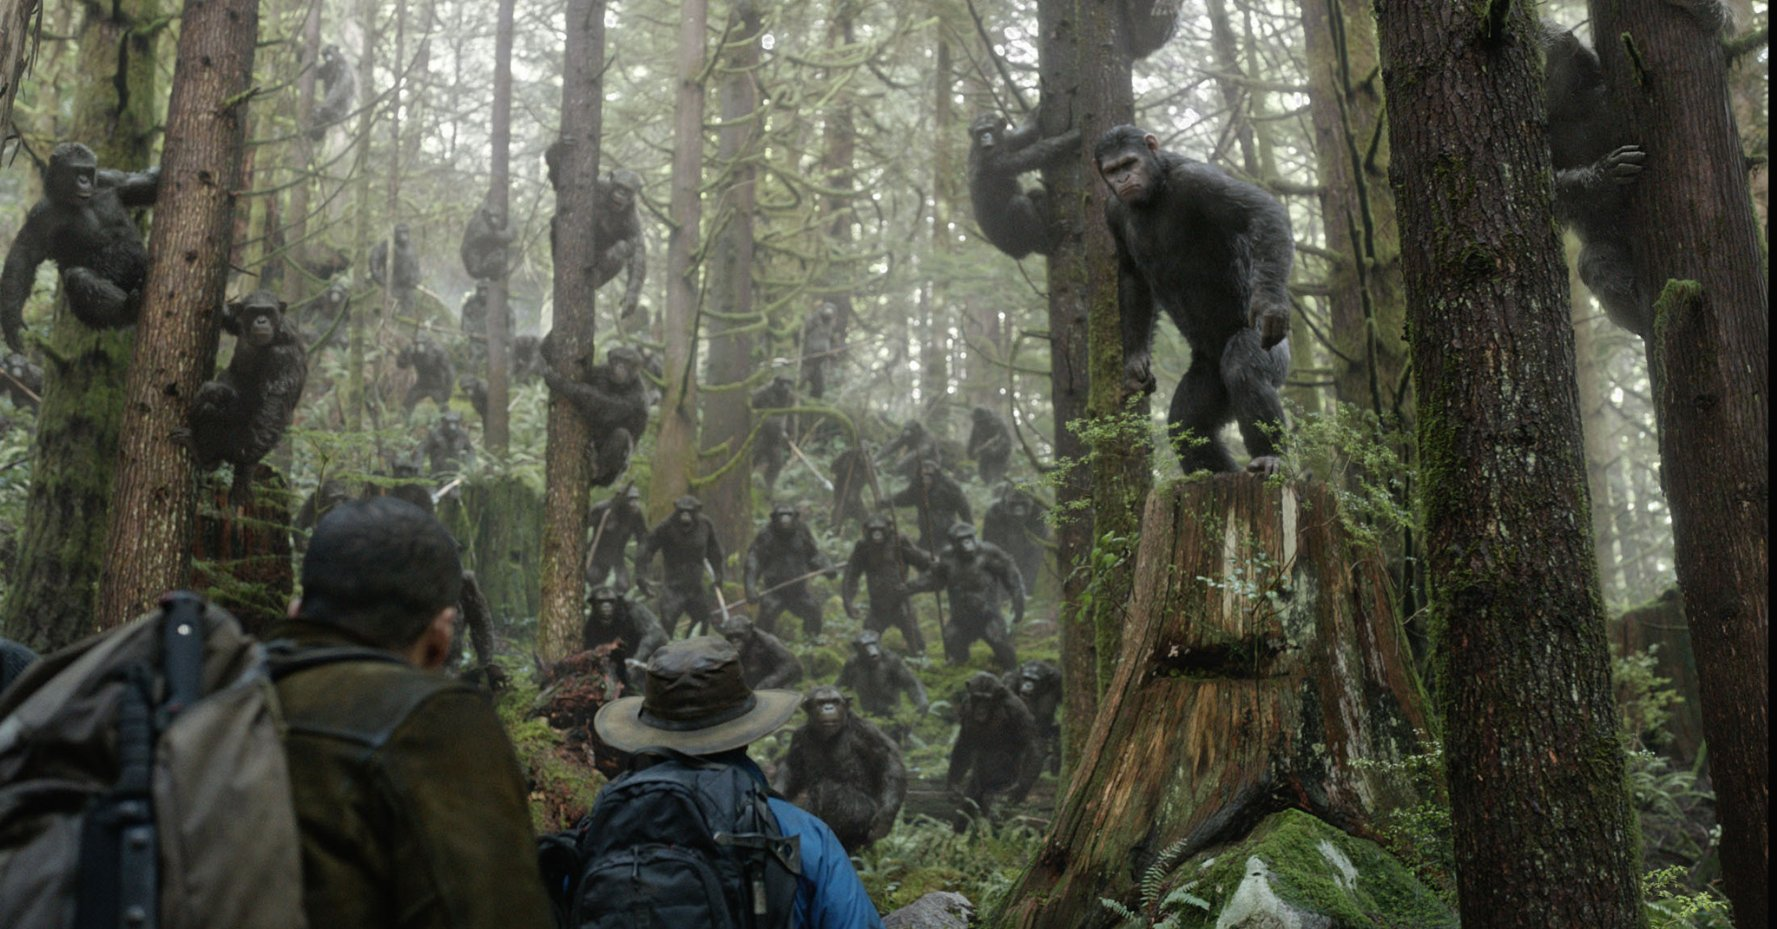 dawn of the planet of the apes full movie hdmovie14